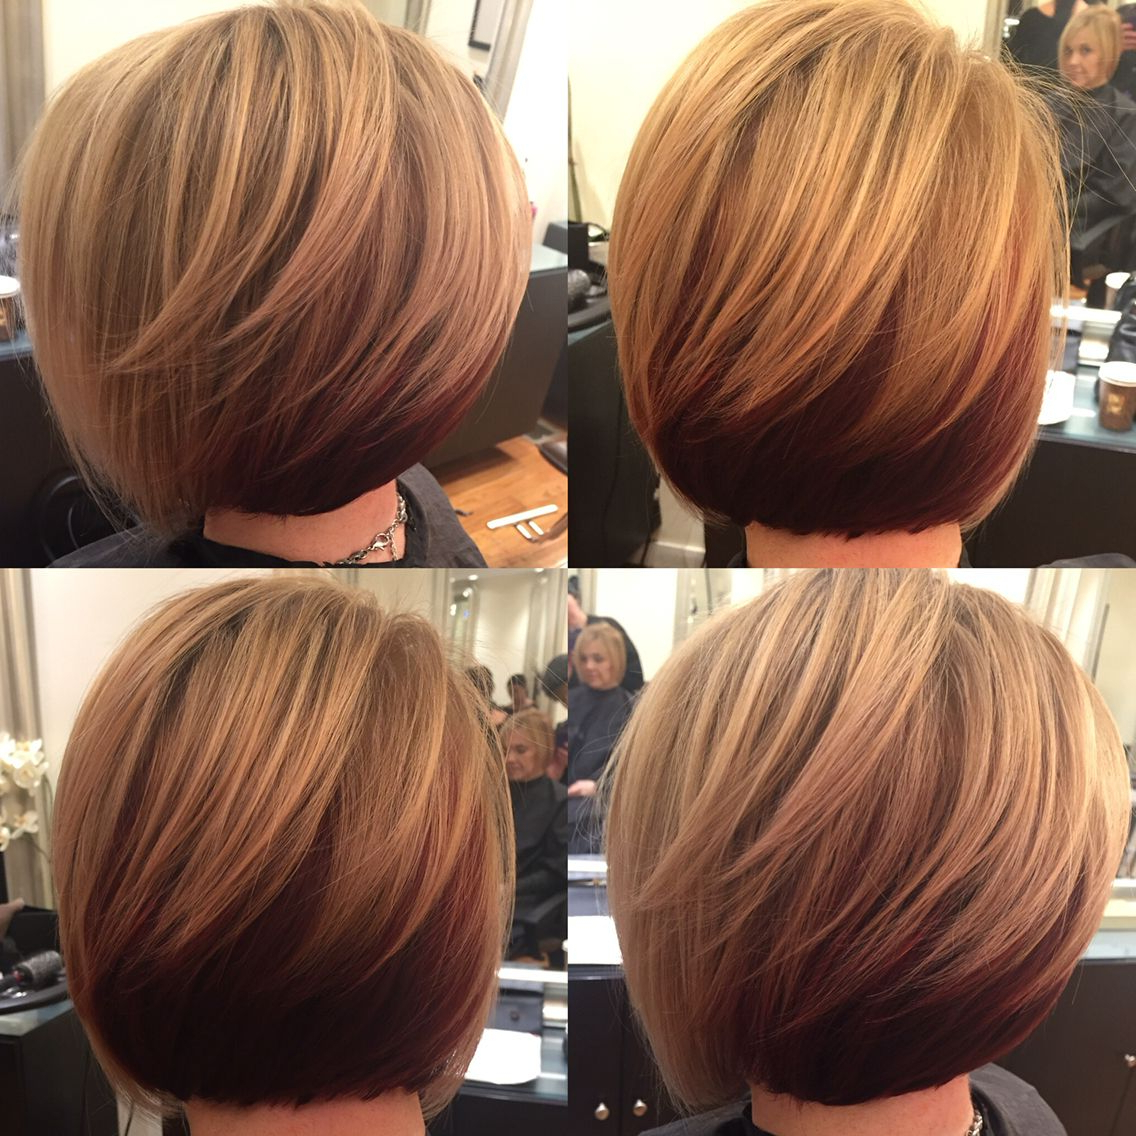 Short Slightly Stacked Bob W/ Highlights On Dark Blonde Base W Throughout Stacked Bob Hairstyles With Highlights (View 11 of 20)